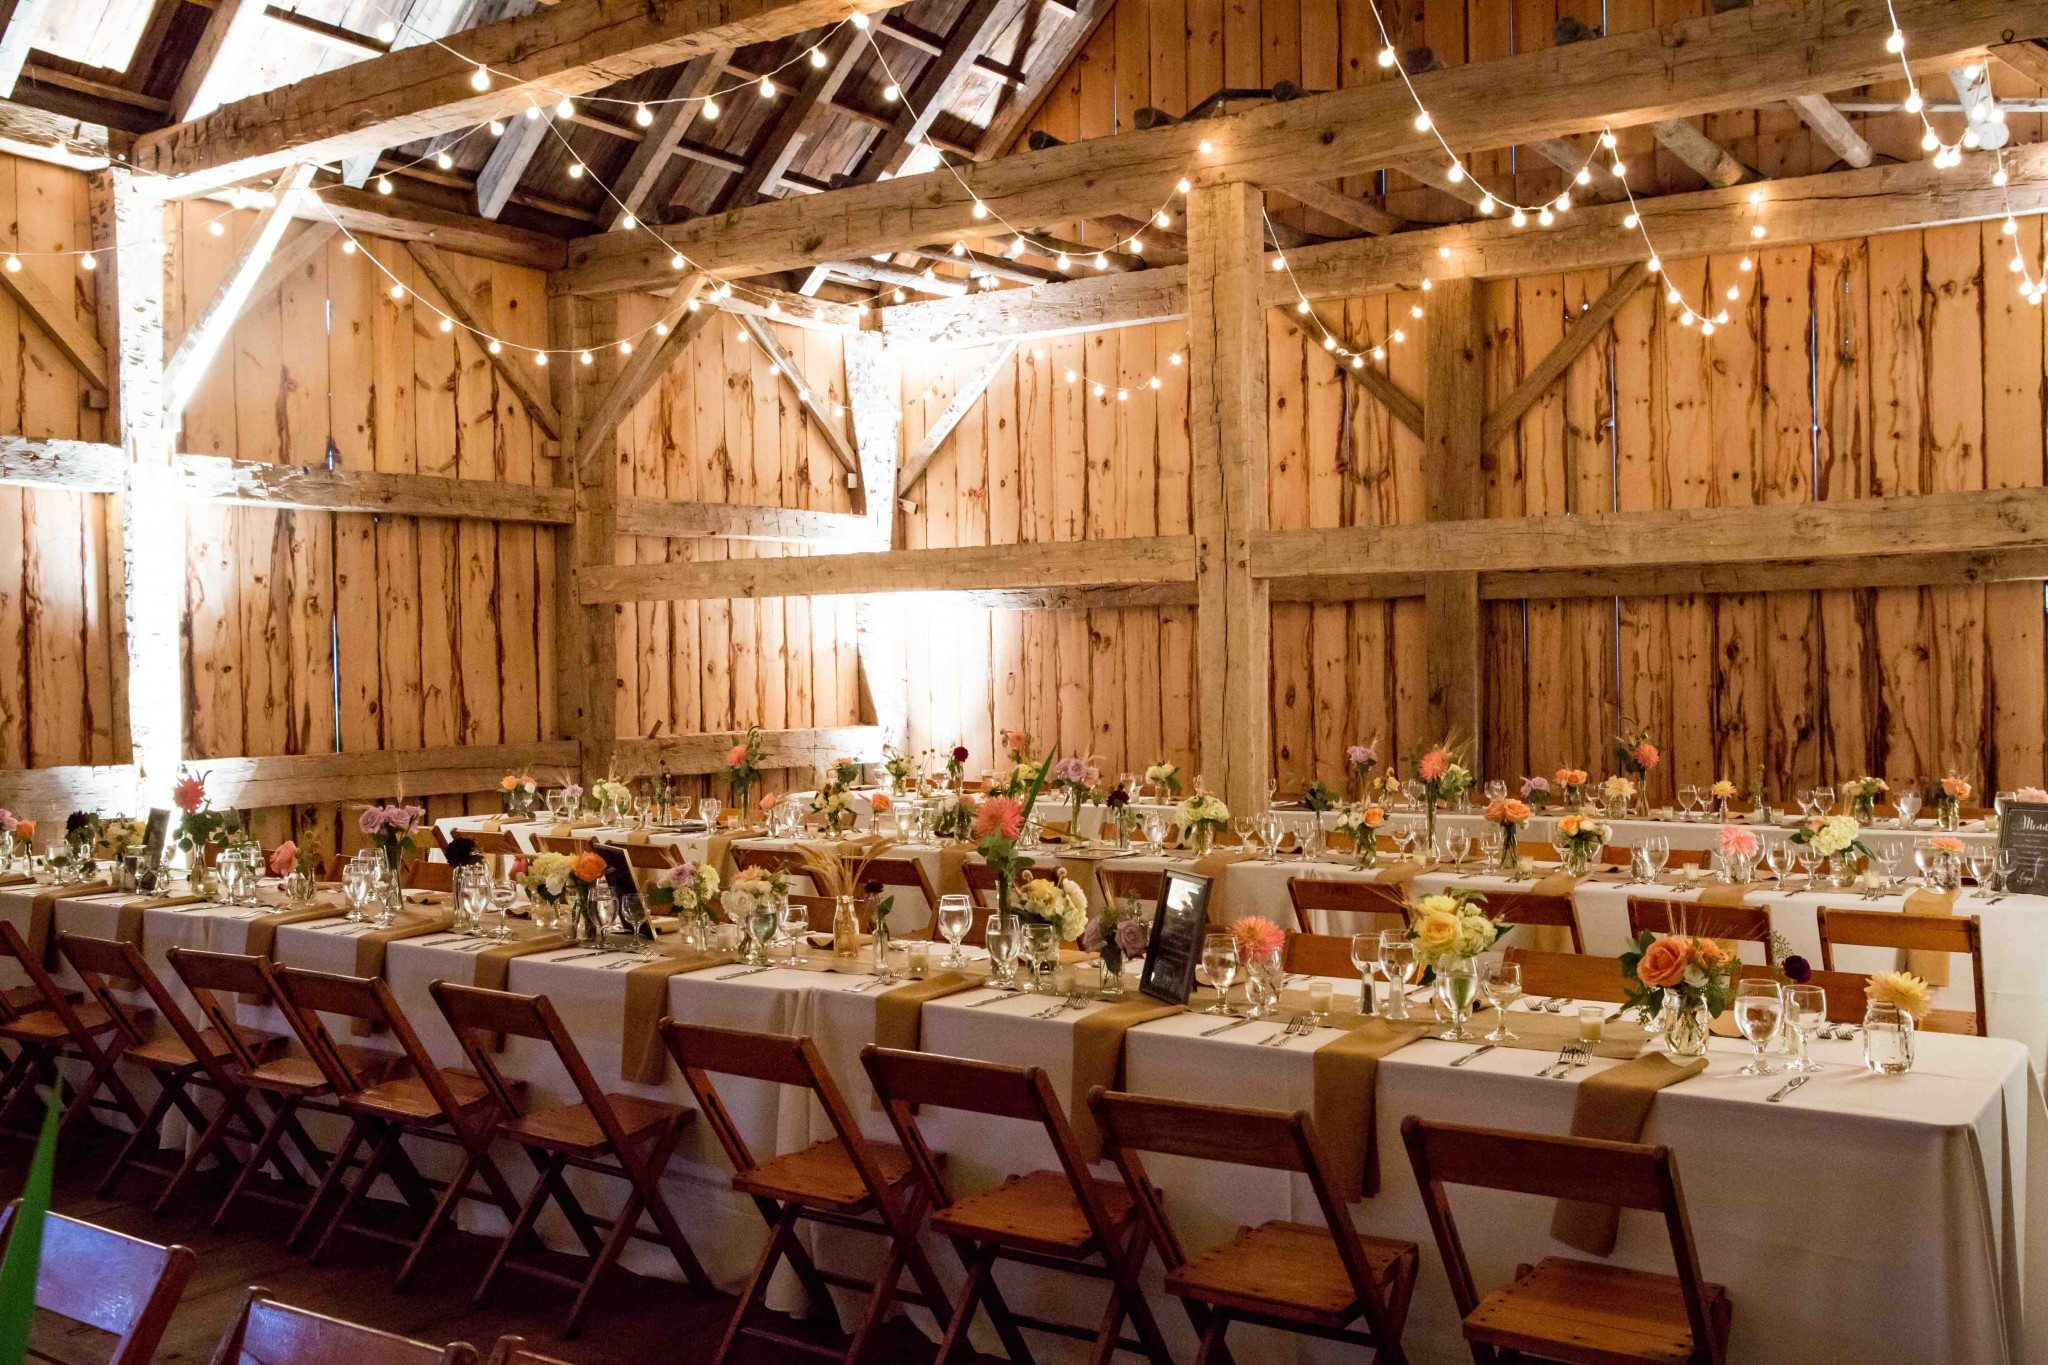 Rustic chic wedding reception in the Scottish Barn, Trisha Millier Photography